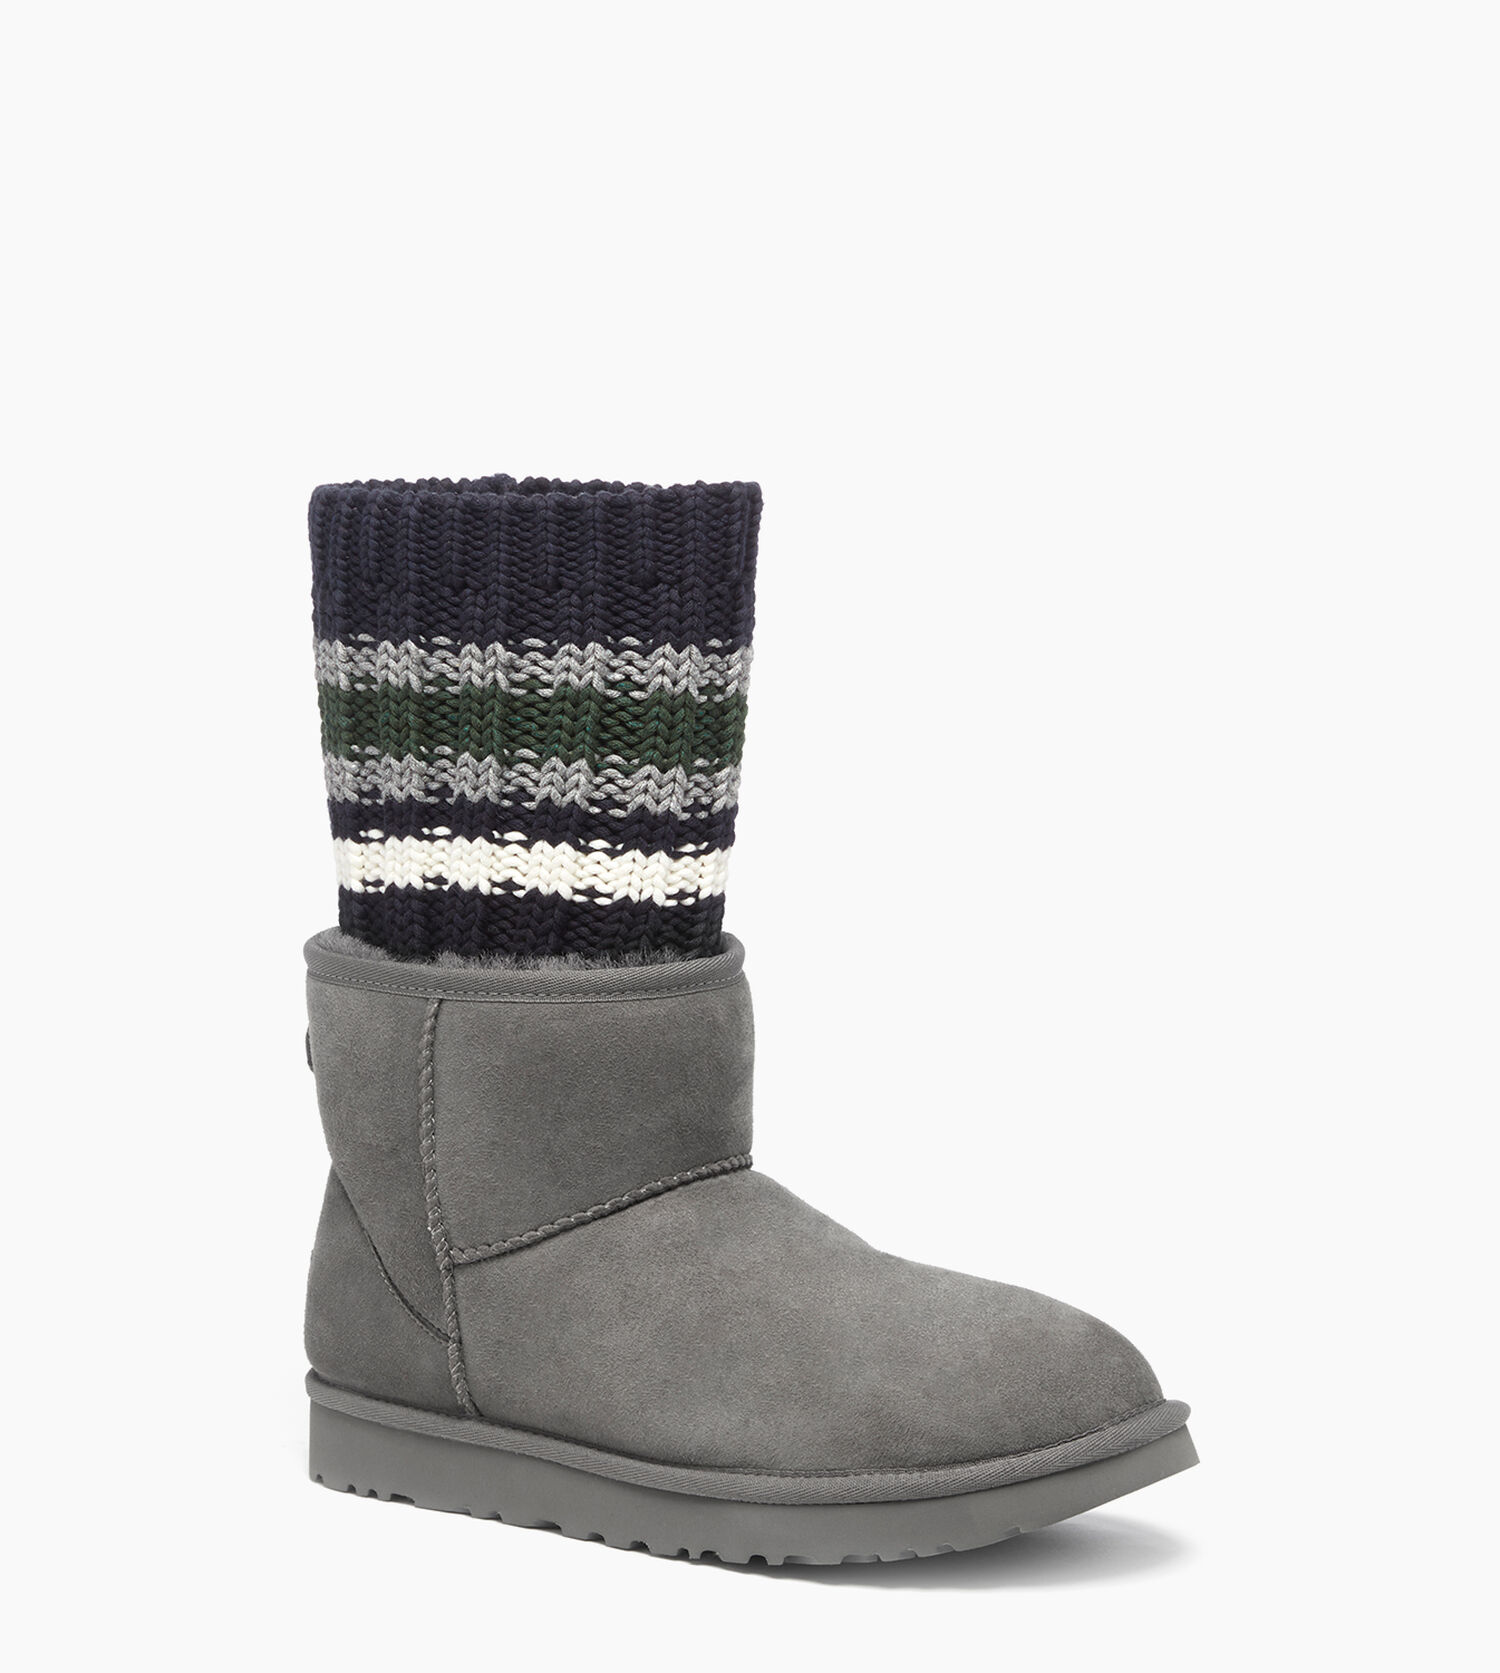 3d58ad4d62c Women's Share this product Sacai Knit Classic Mini II